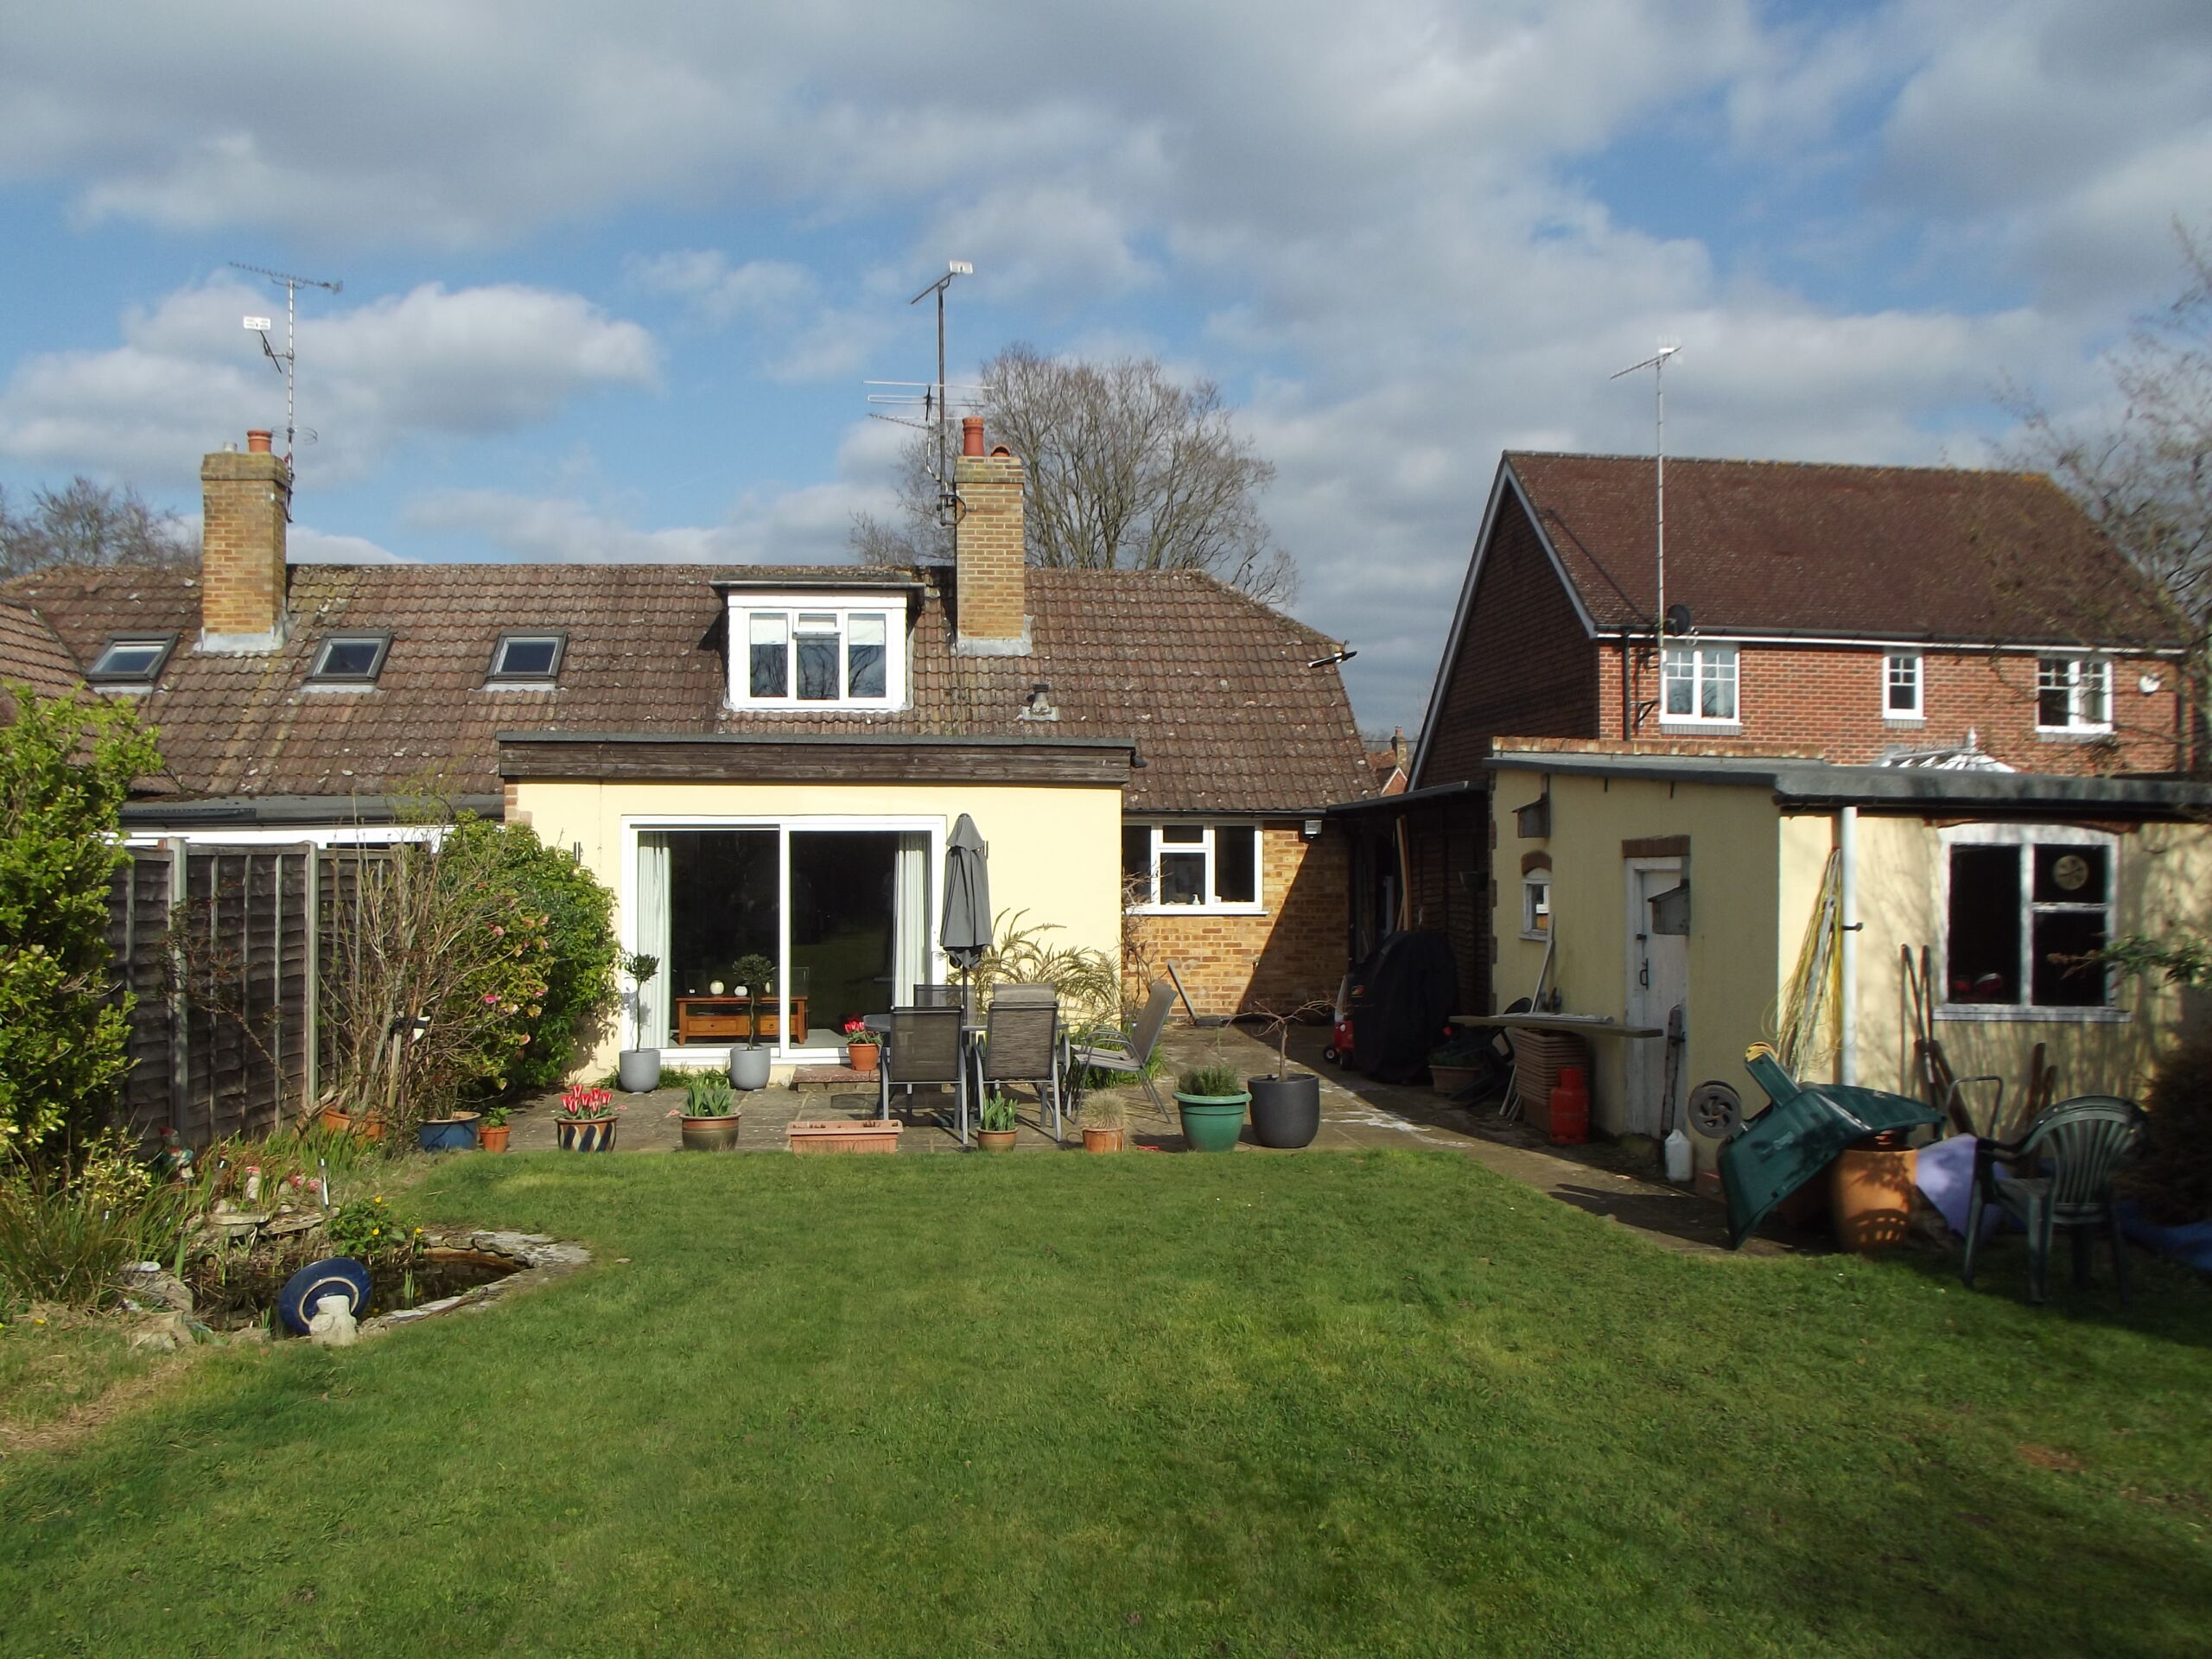 Westleigh - Before